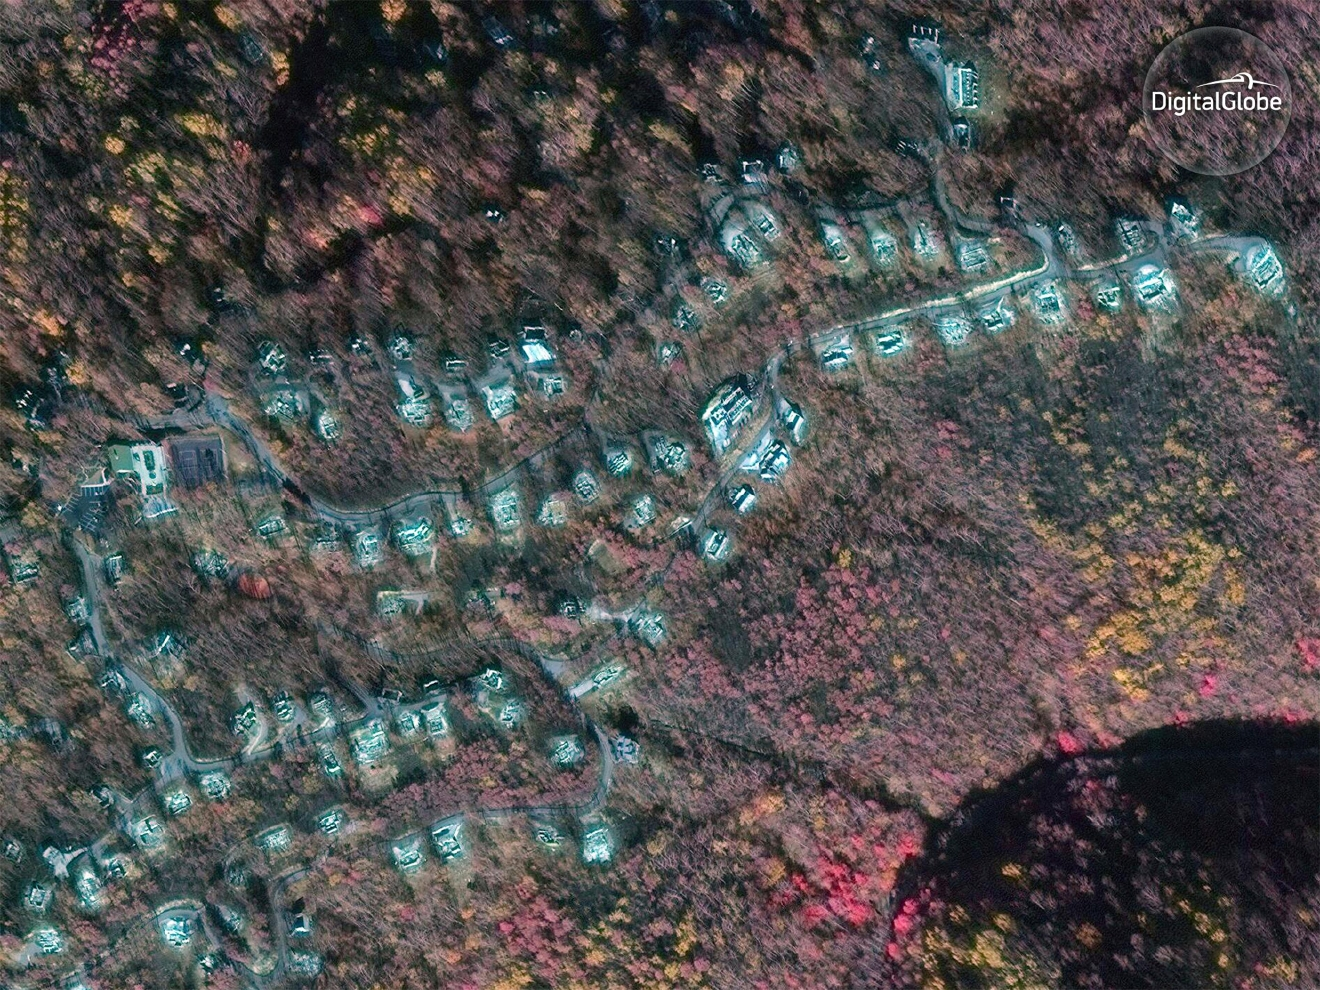 This Dec. 1, 2016, satellite image using near-infrared (NIR) provided by DigitalGlobe shows damage from the wildfire near Ripley's Aquarium of the Smokies in Gatlinburg, Tenn. NIR imagery causes healthy vegetation to appear red and the burn scar from the wildfire to be dark brown. More than 14,000 residents and visitors in Gatlinburg were forced to evacuate, and the typically bustling tourist city has been shuttered ever since. (Digital Globe via AP)